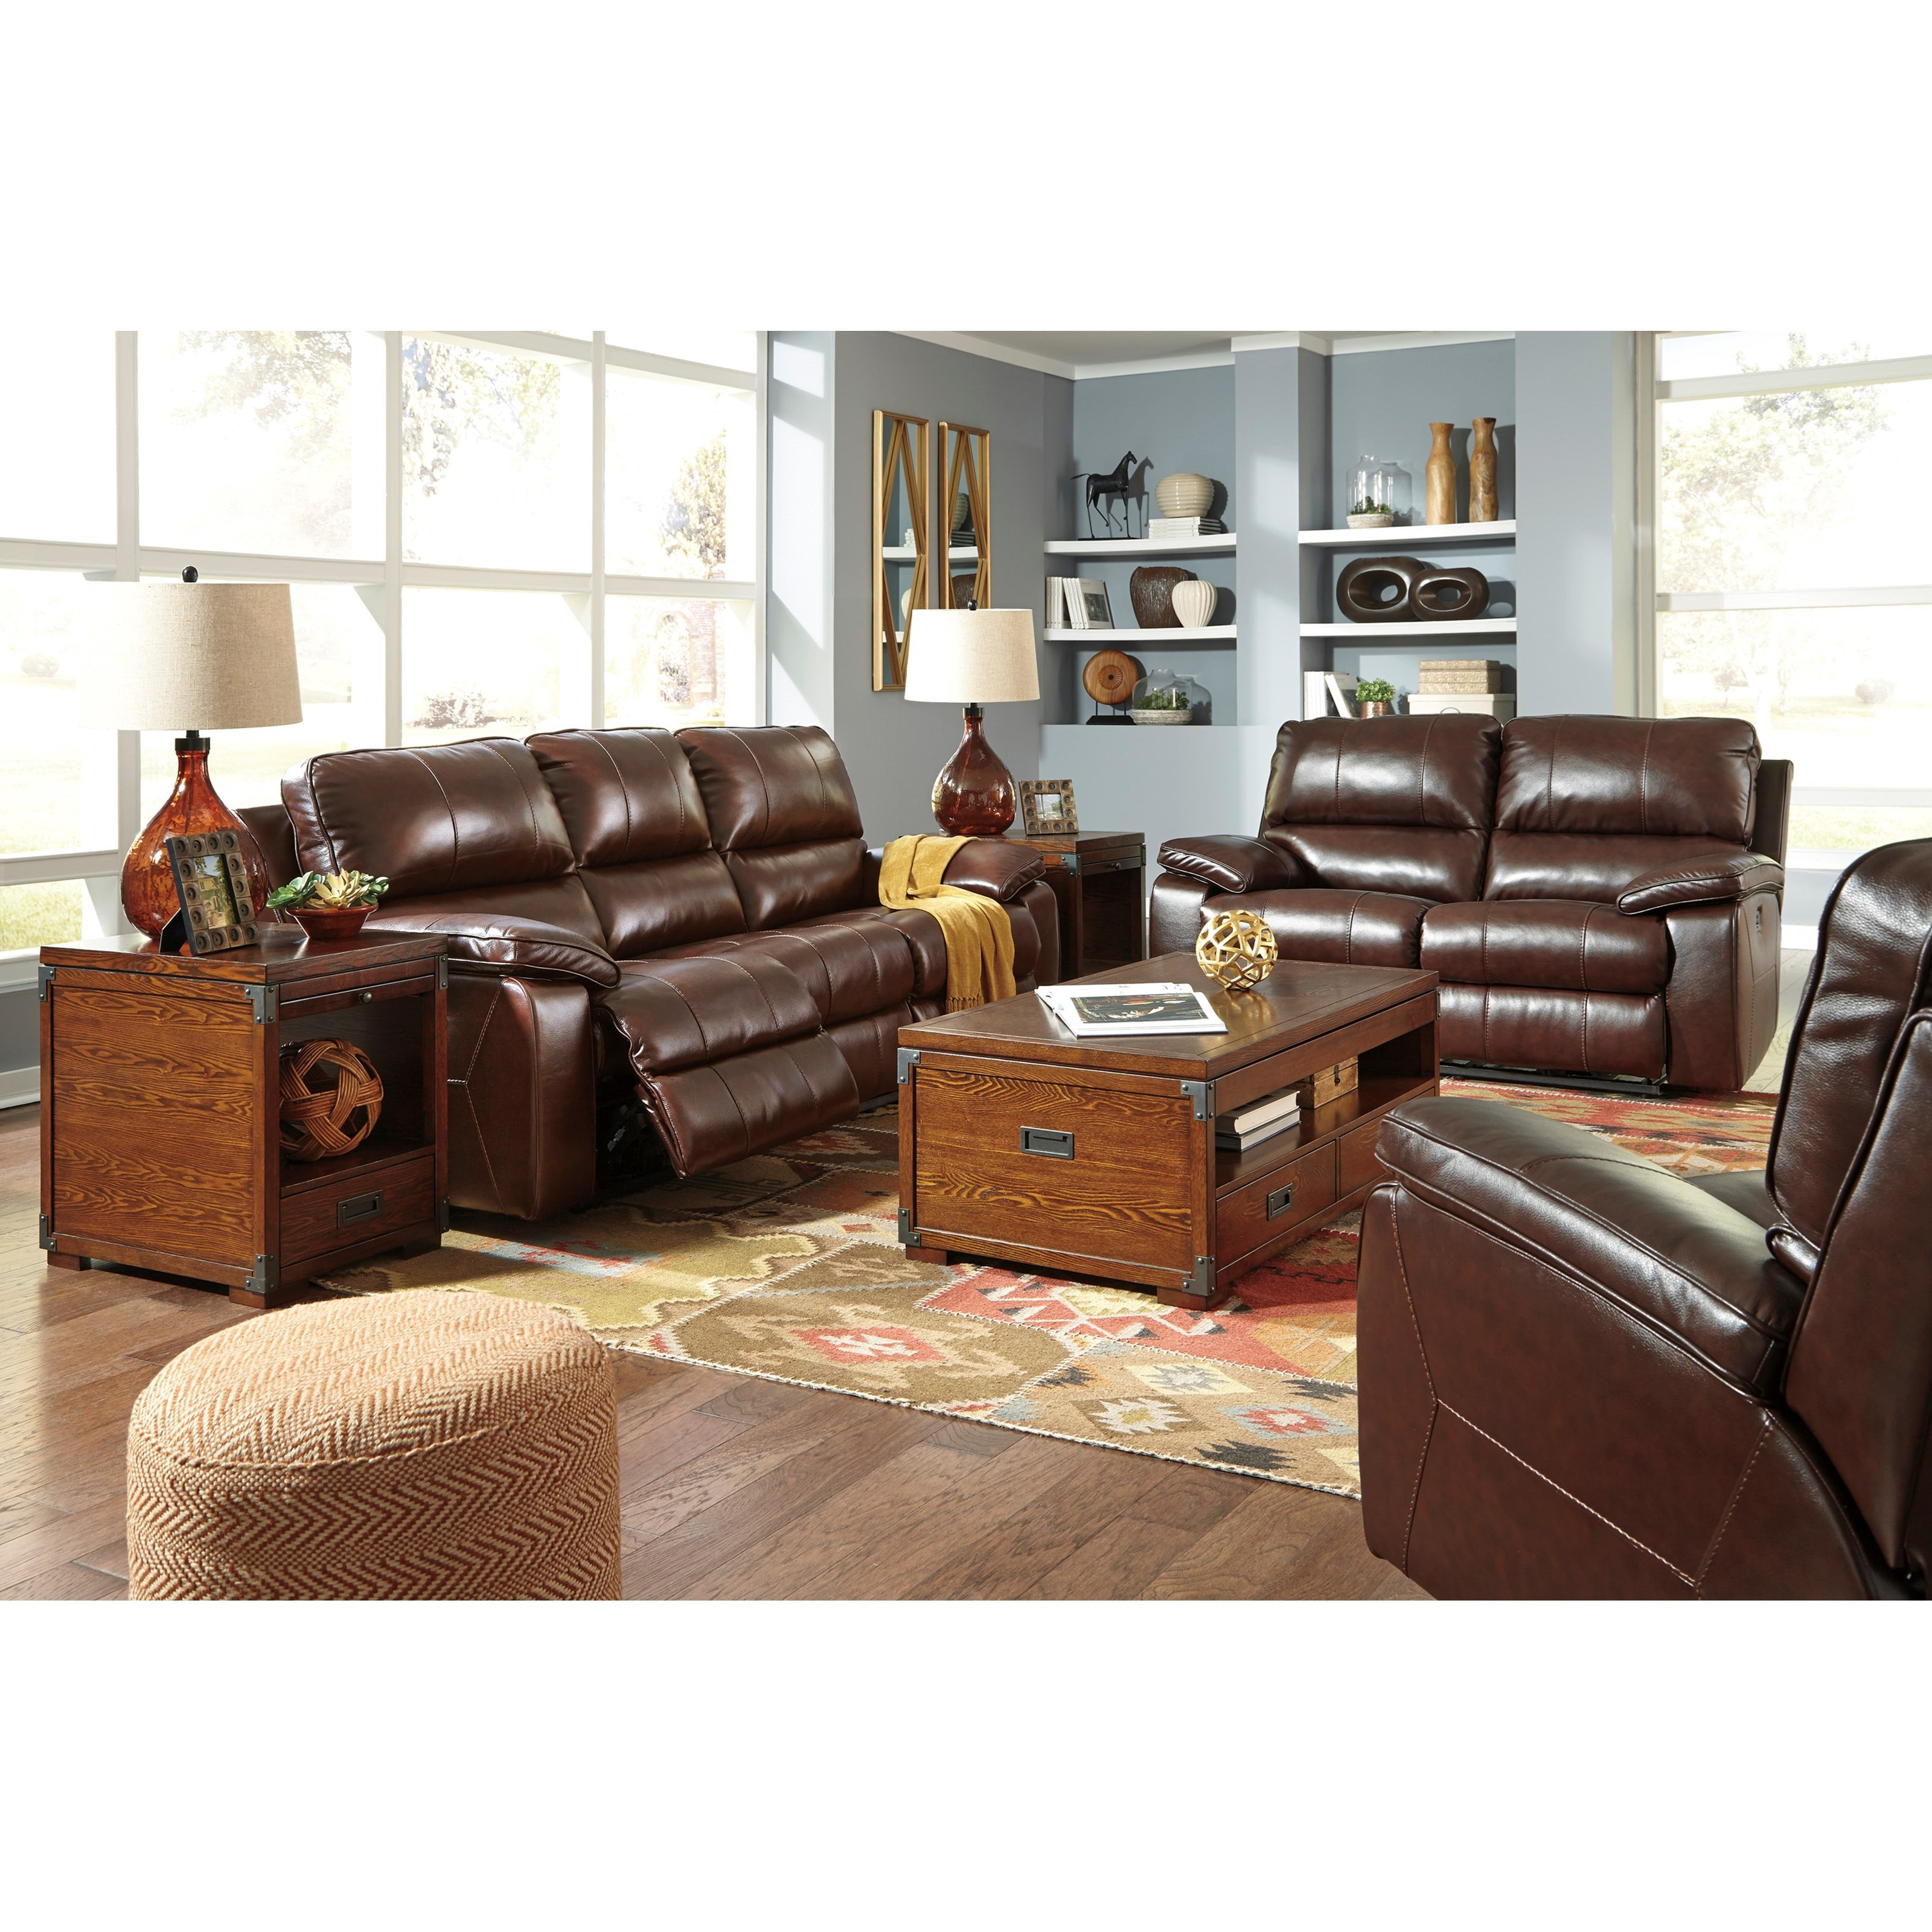 Signature Design By Ashley Transister 5130215 Leather Match Power Reclining Sofa W Adjustable